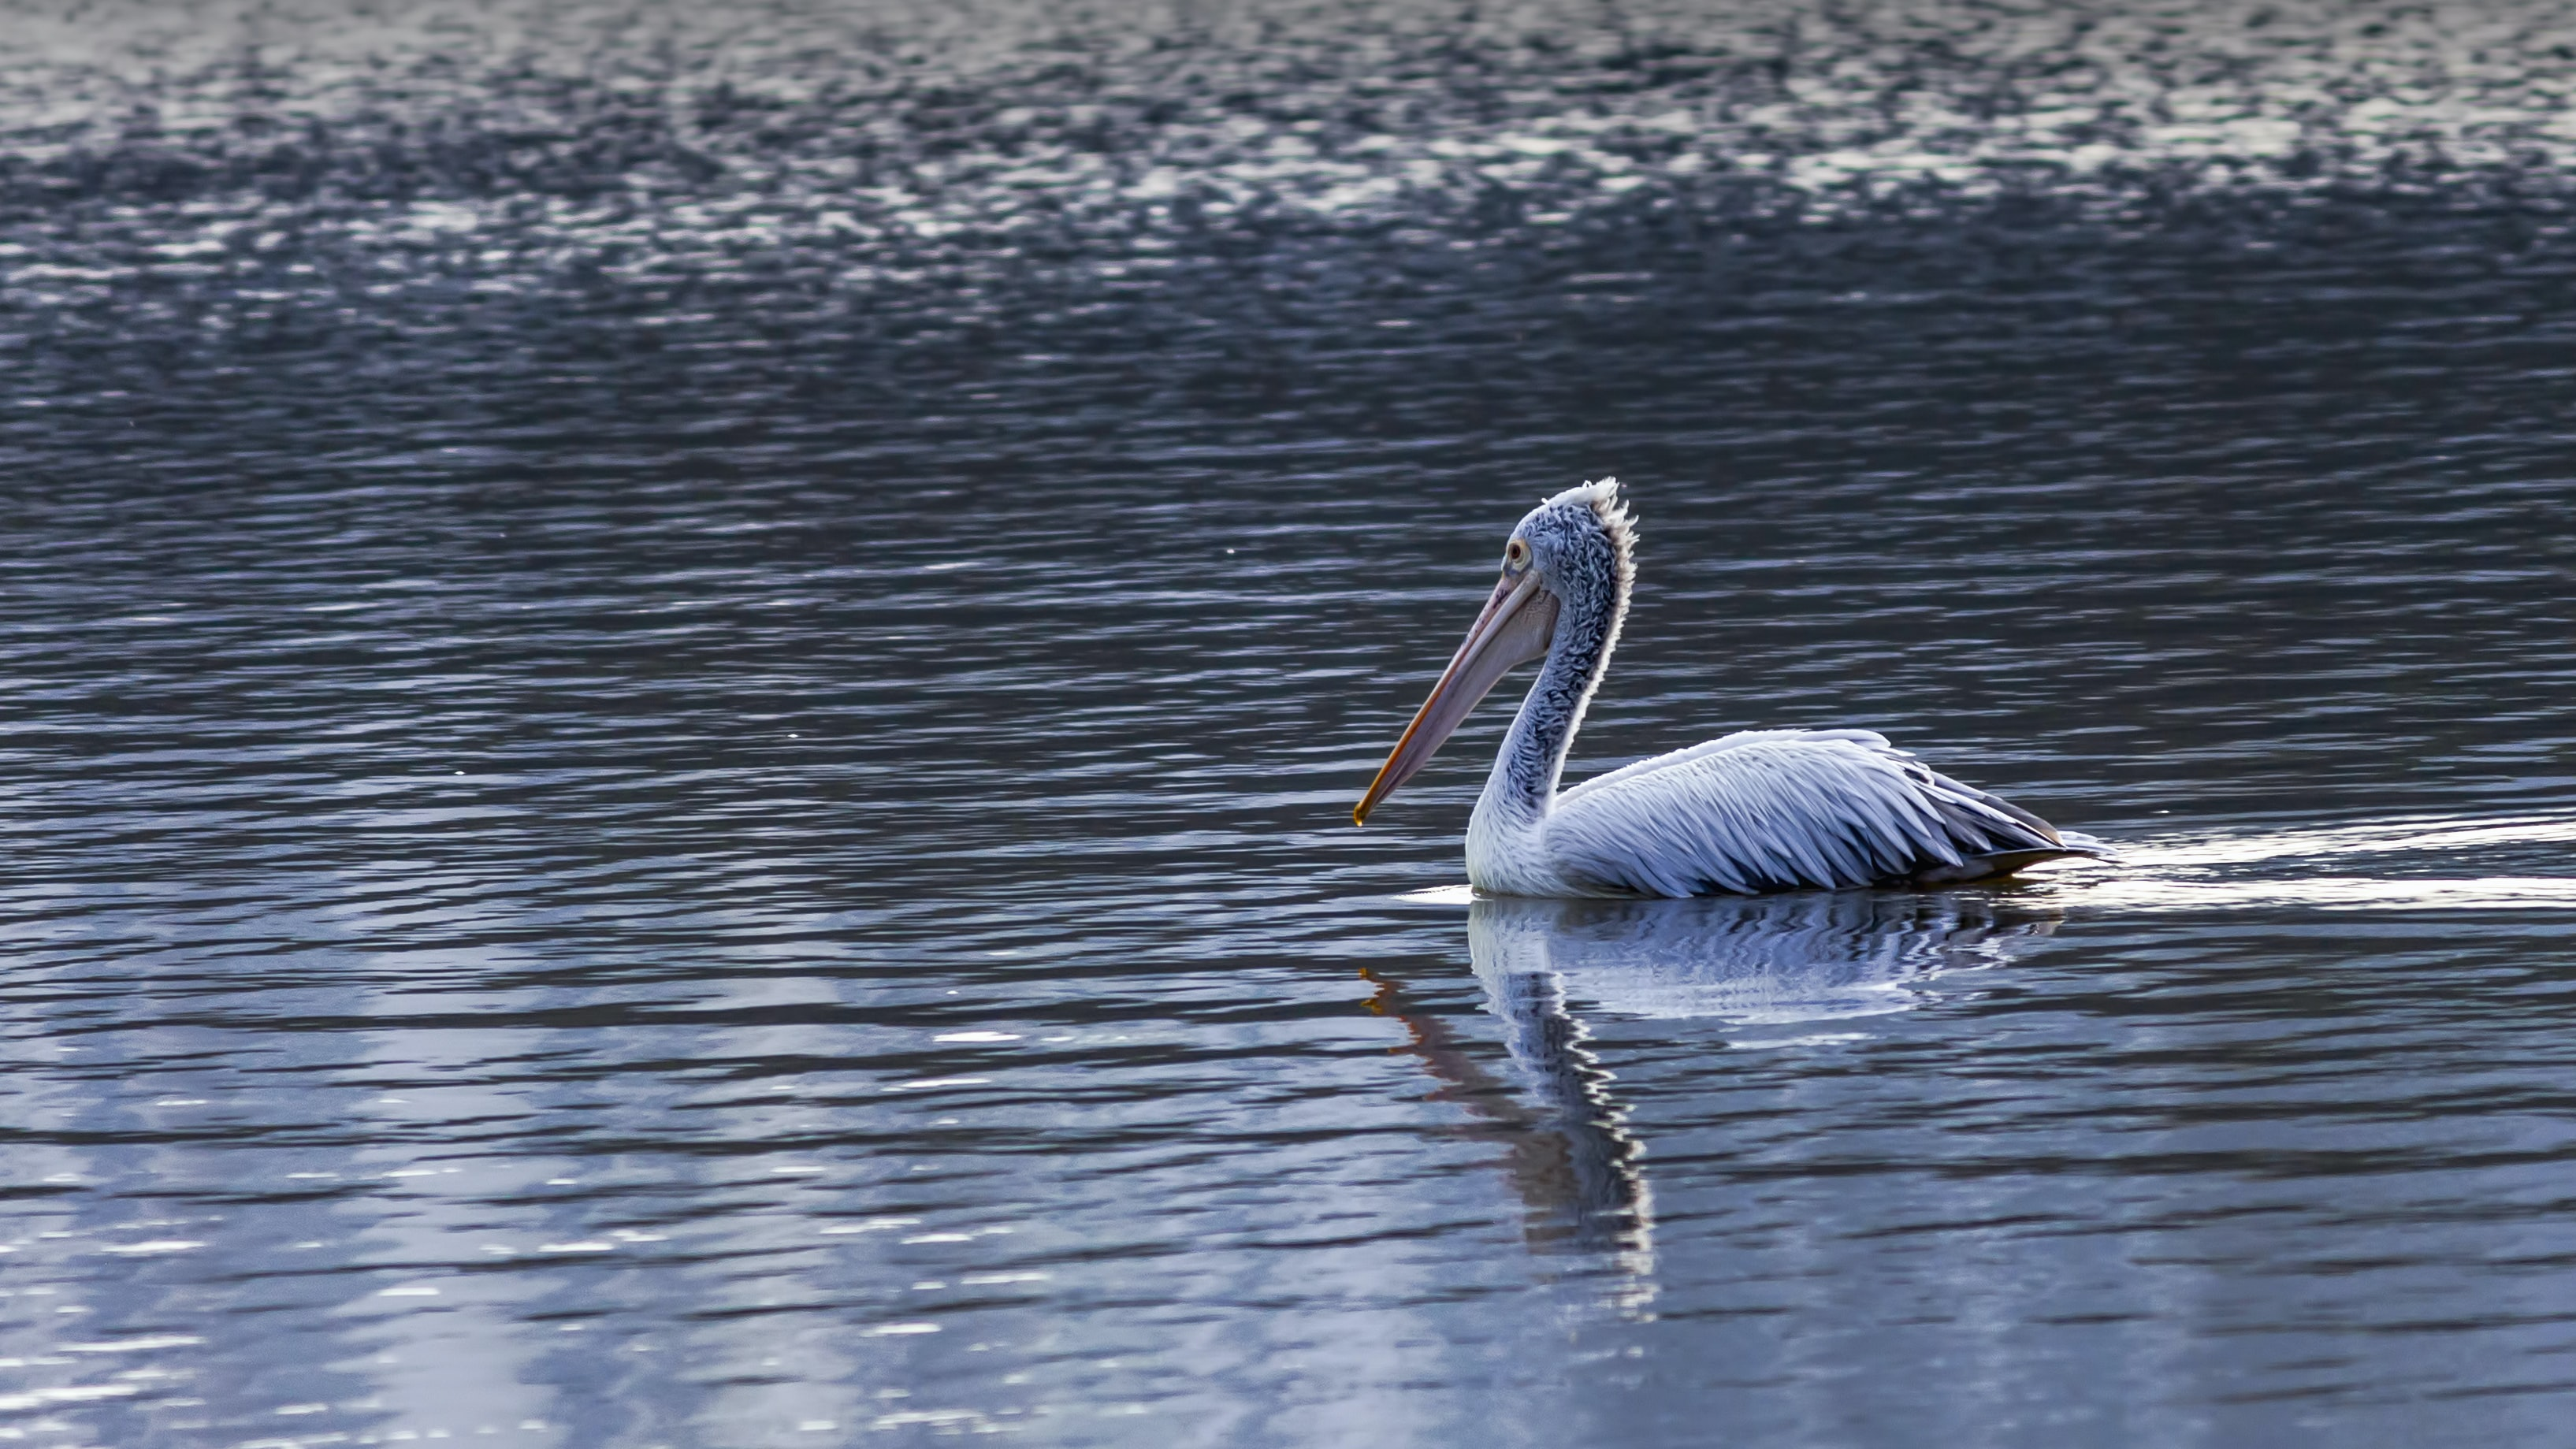 pelican on body of water during daytime